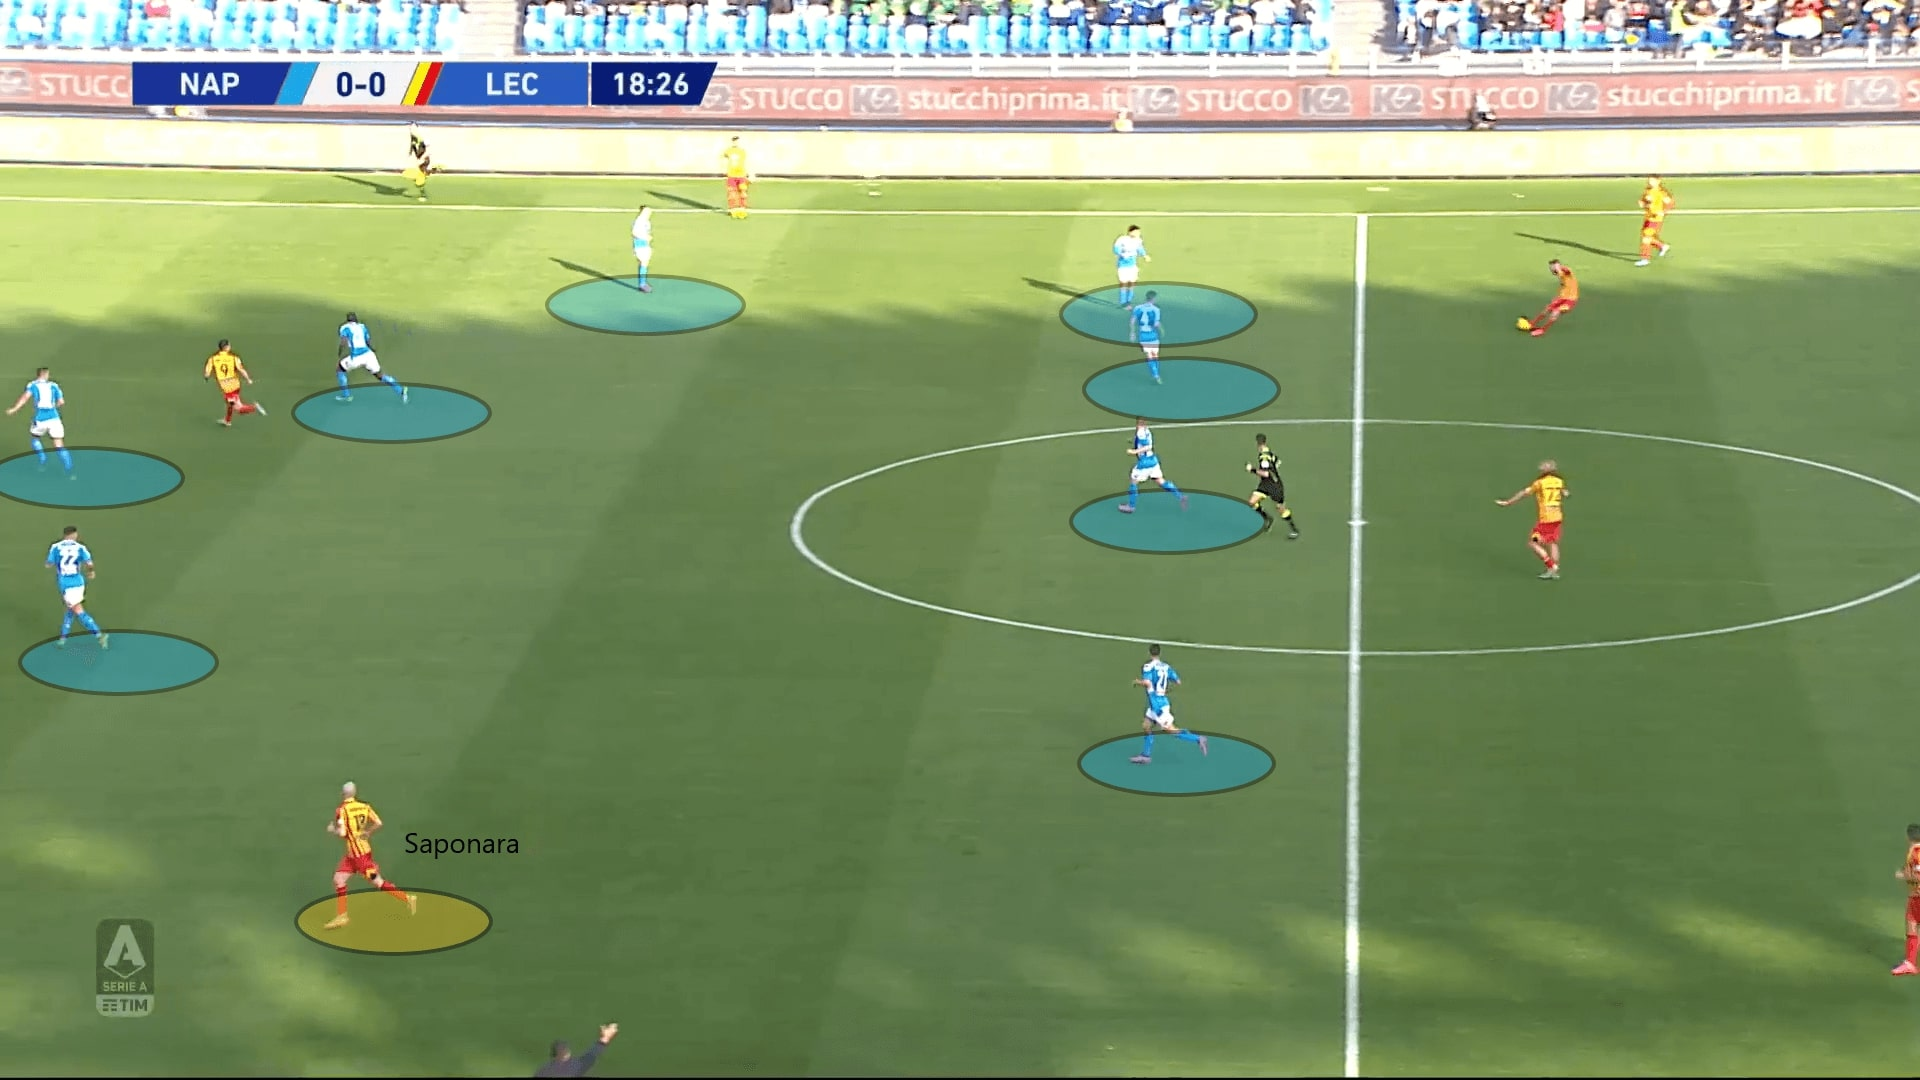 Serie A 2019/20: Napoli vs Leece - tactical analysis tactics